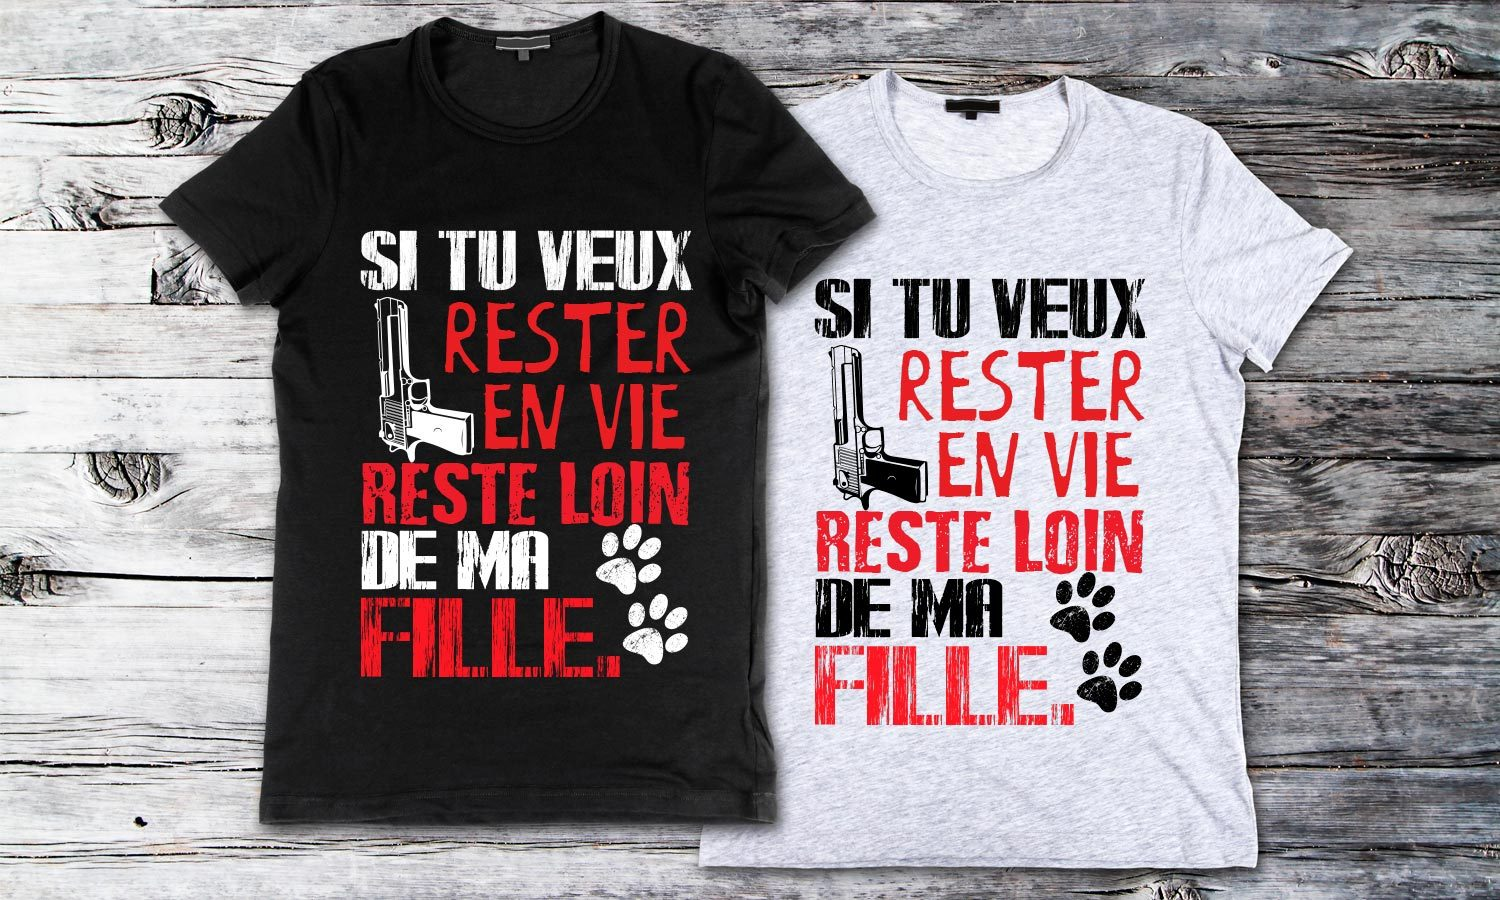 Rester - Printed T-Shirt for Men, Women and Kids - TS153